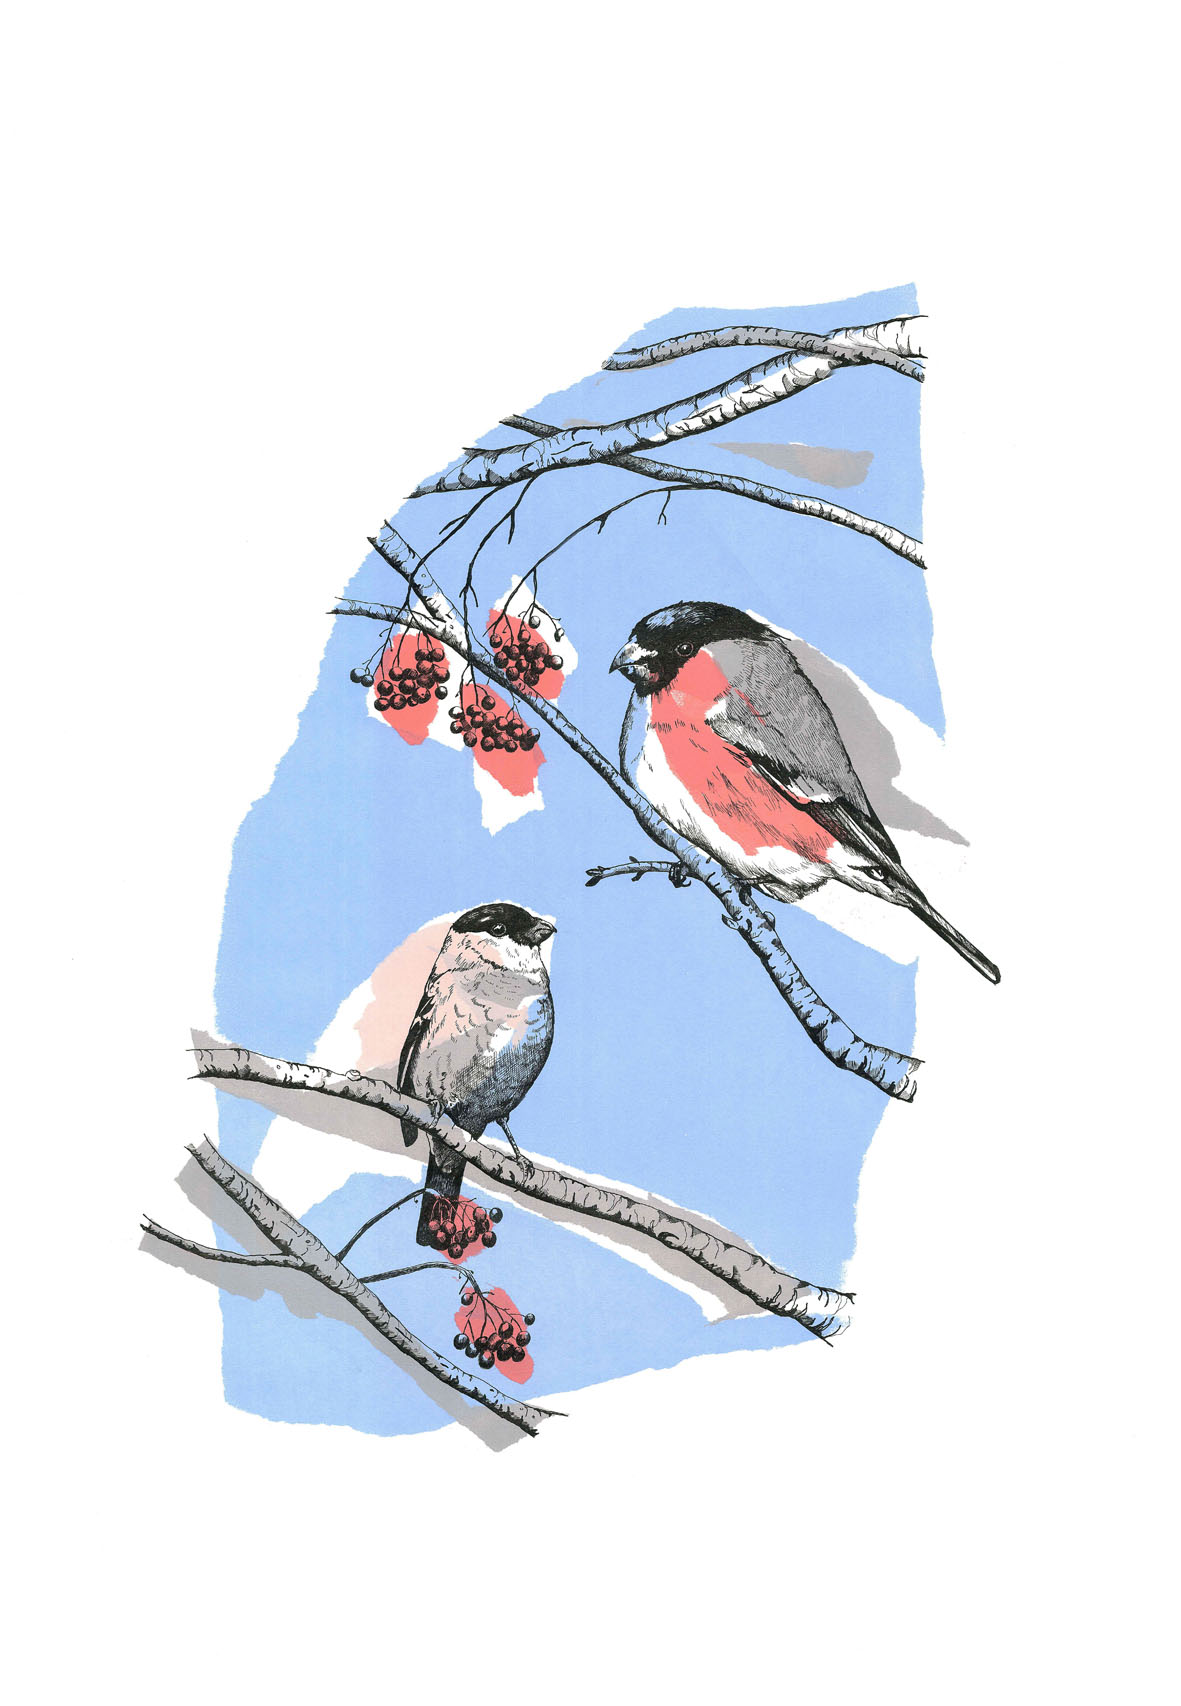 ''Bullfinch Love' - Original Screenprint with Pen and Ink ' by artist Joanna Mcdonough